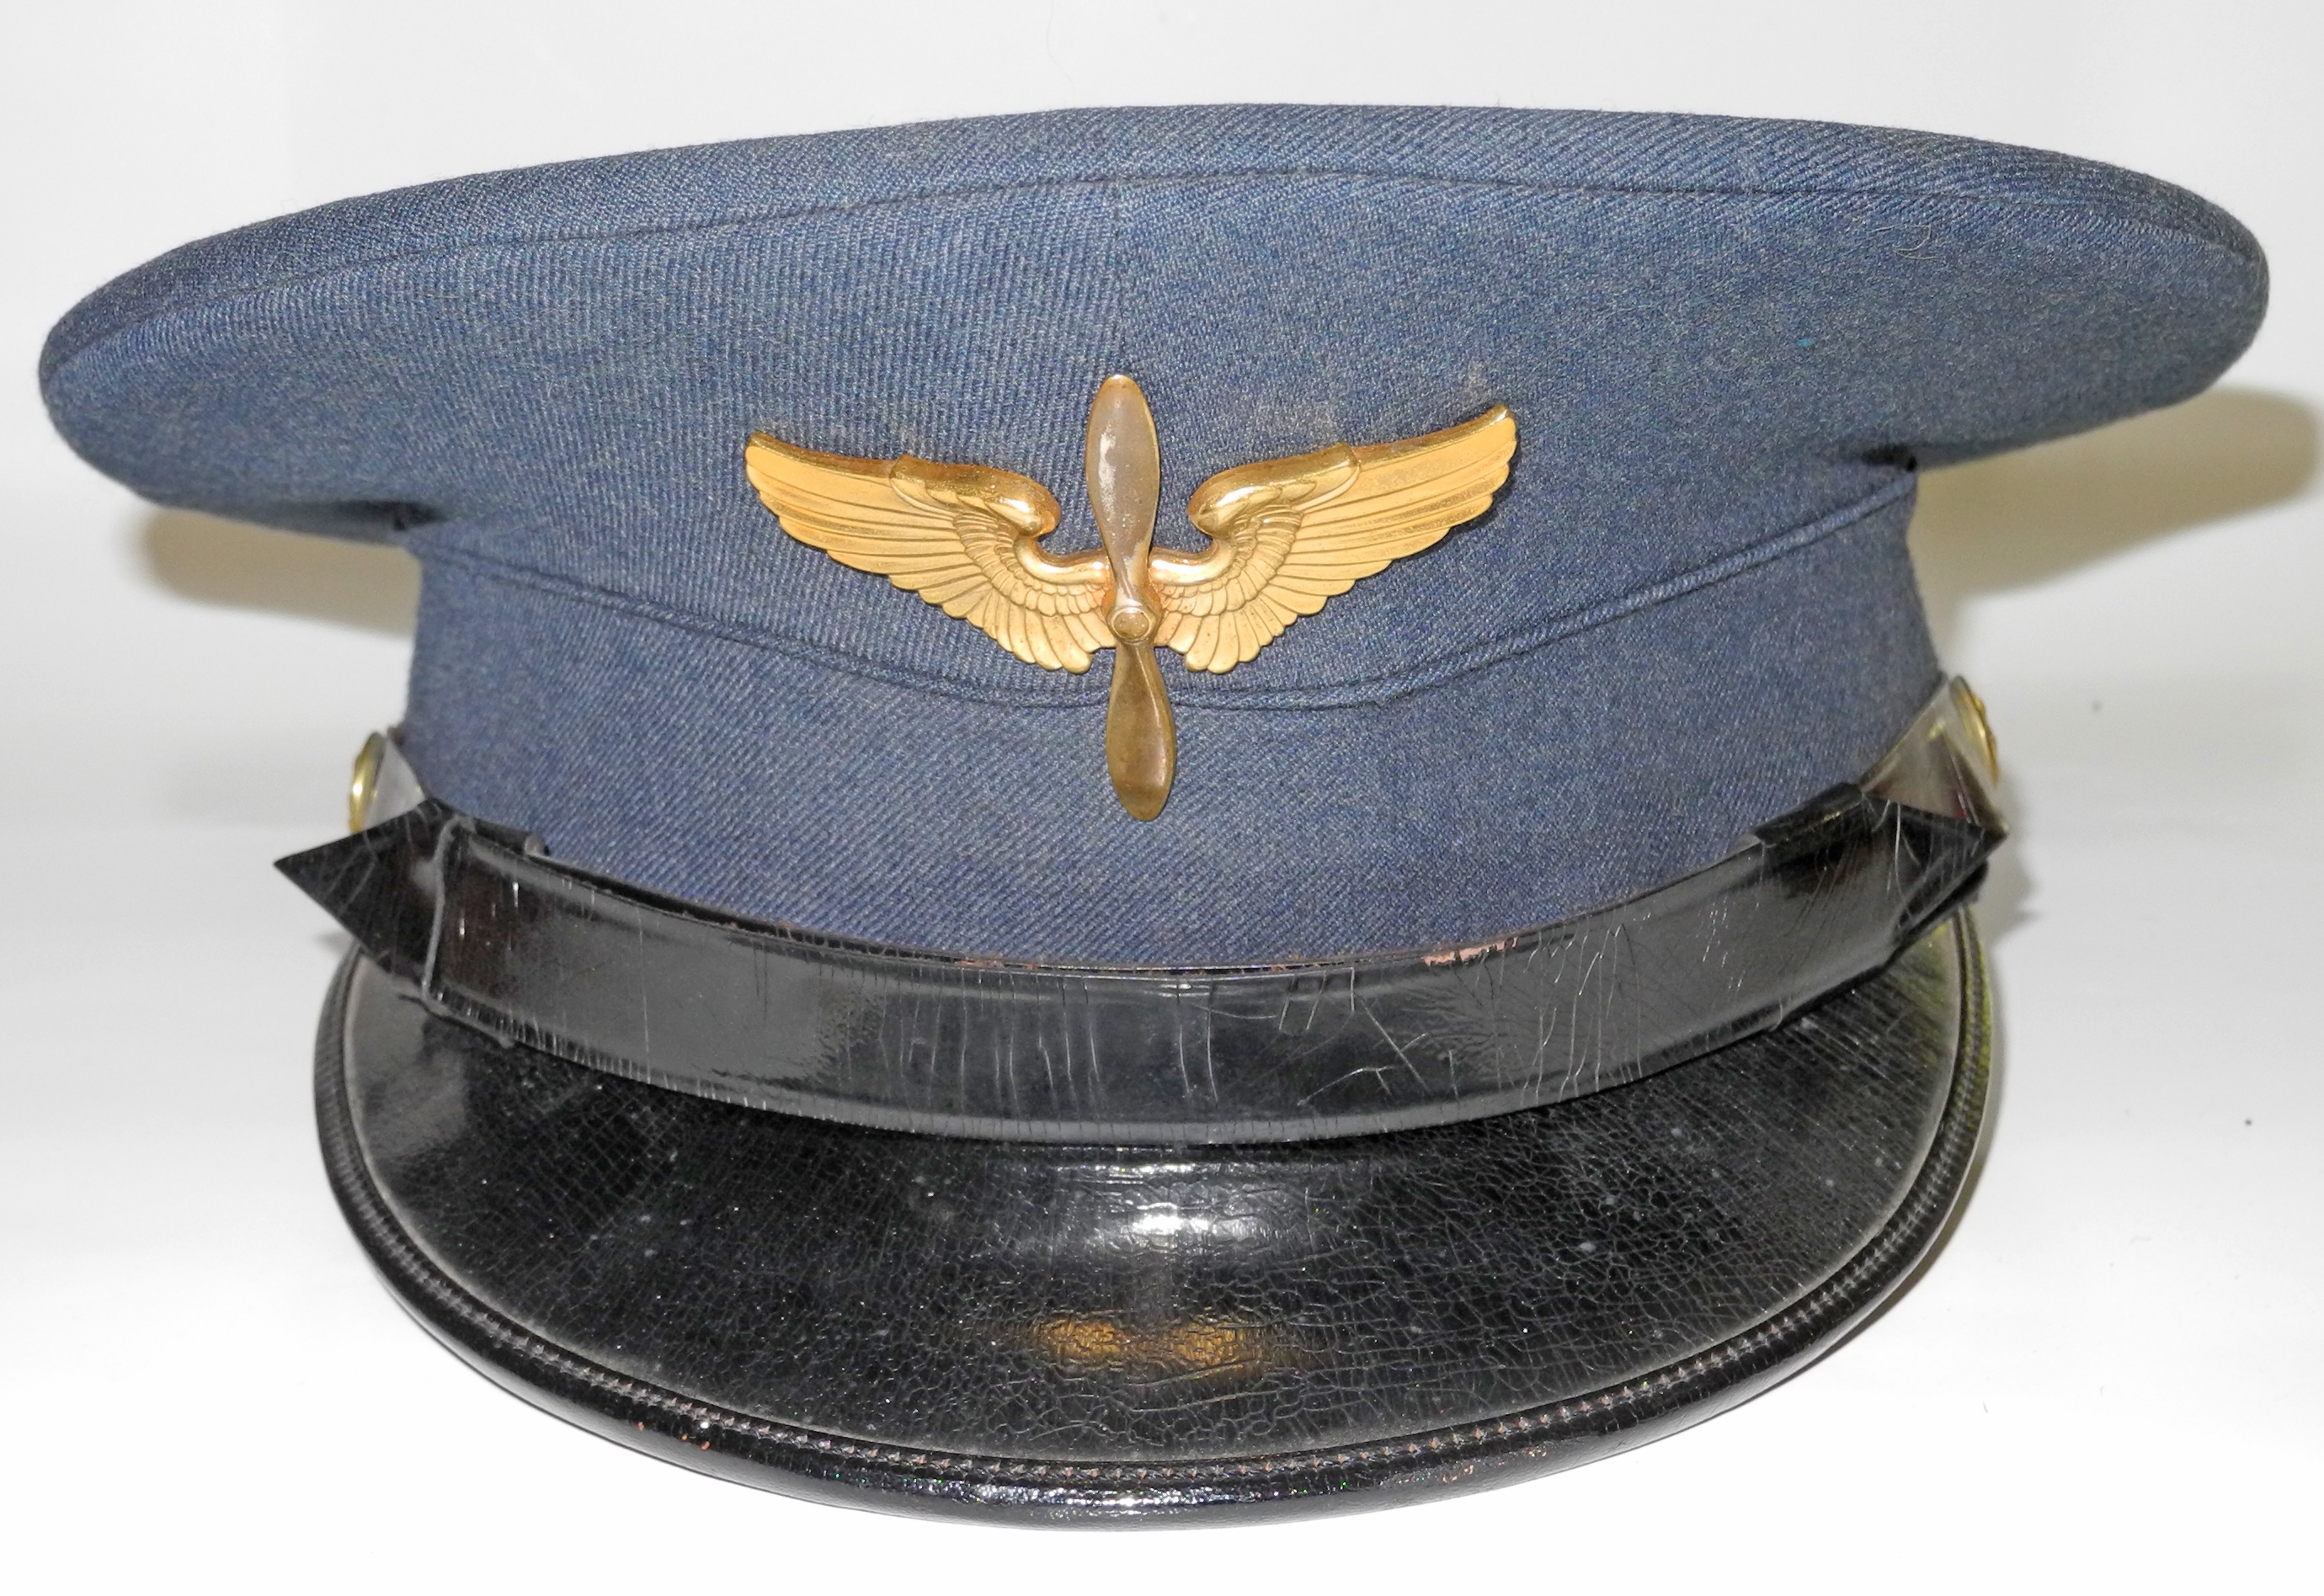 AAF Cadet service dress uniform and cap